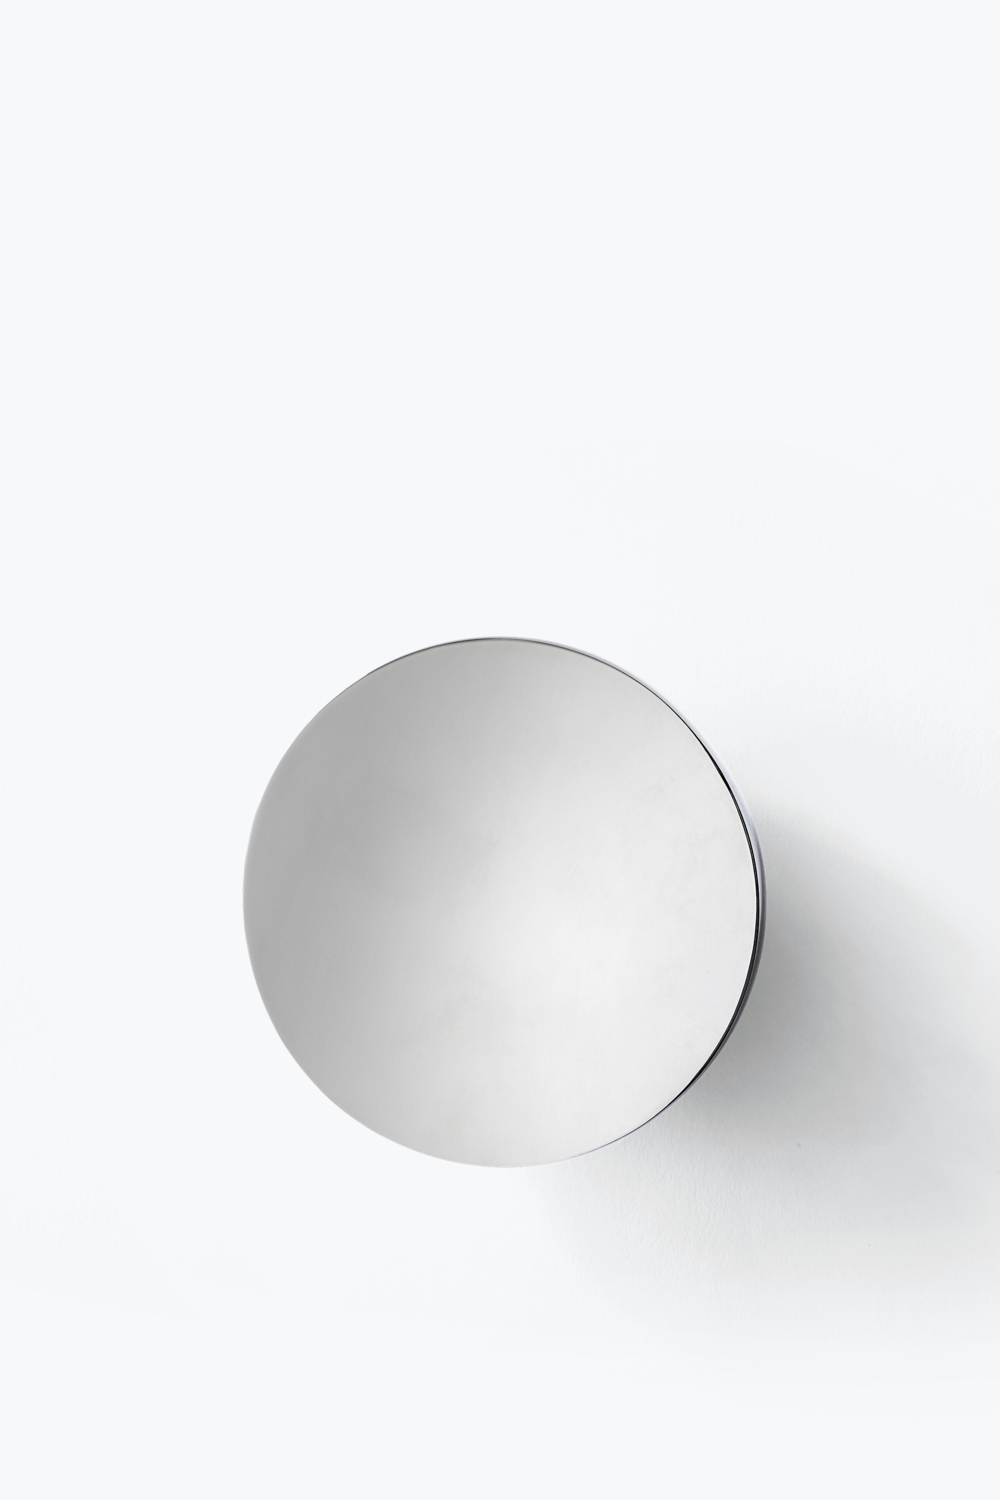 Stainless Steel Wall Mirrors In Fashionable Aura Wall Mirror – Stainless Steel, Large — New Works (View 7 of 20)